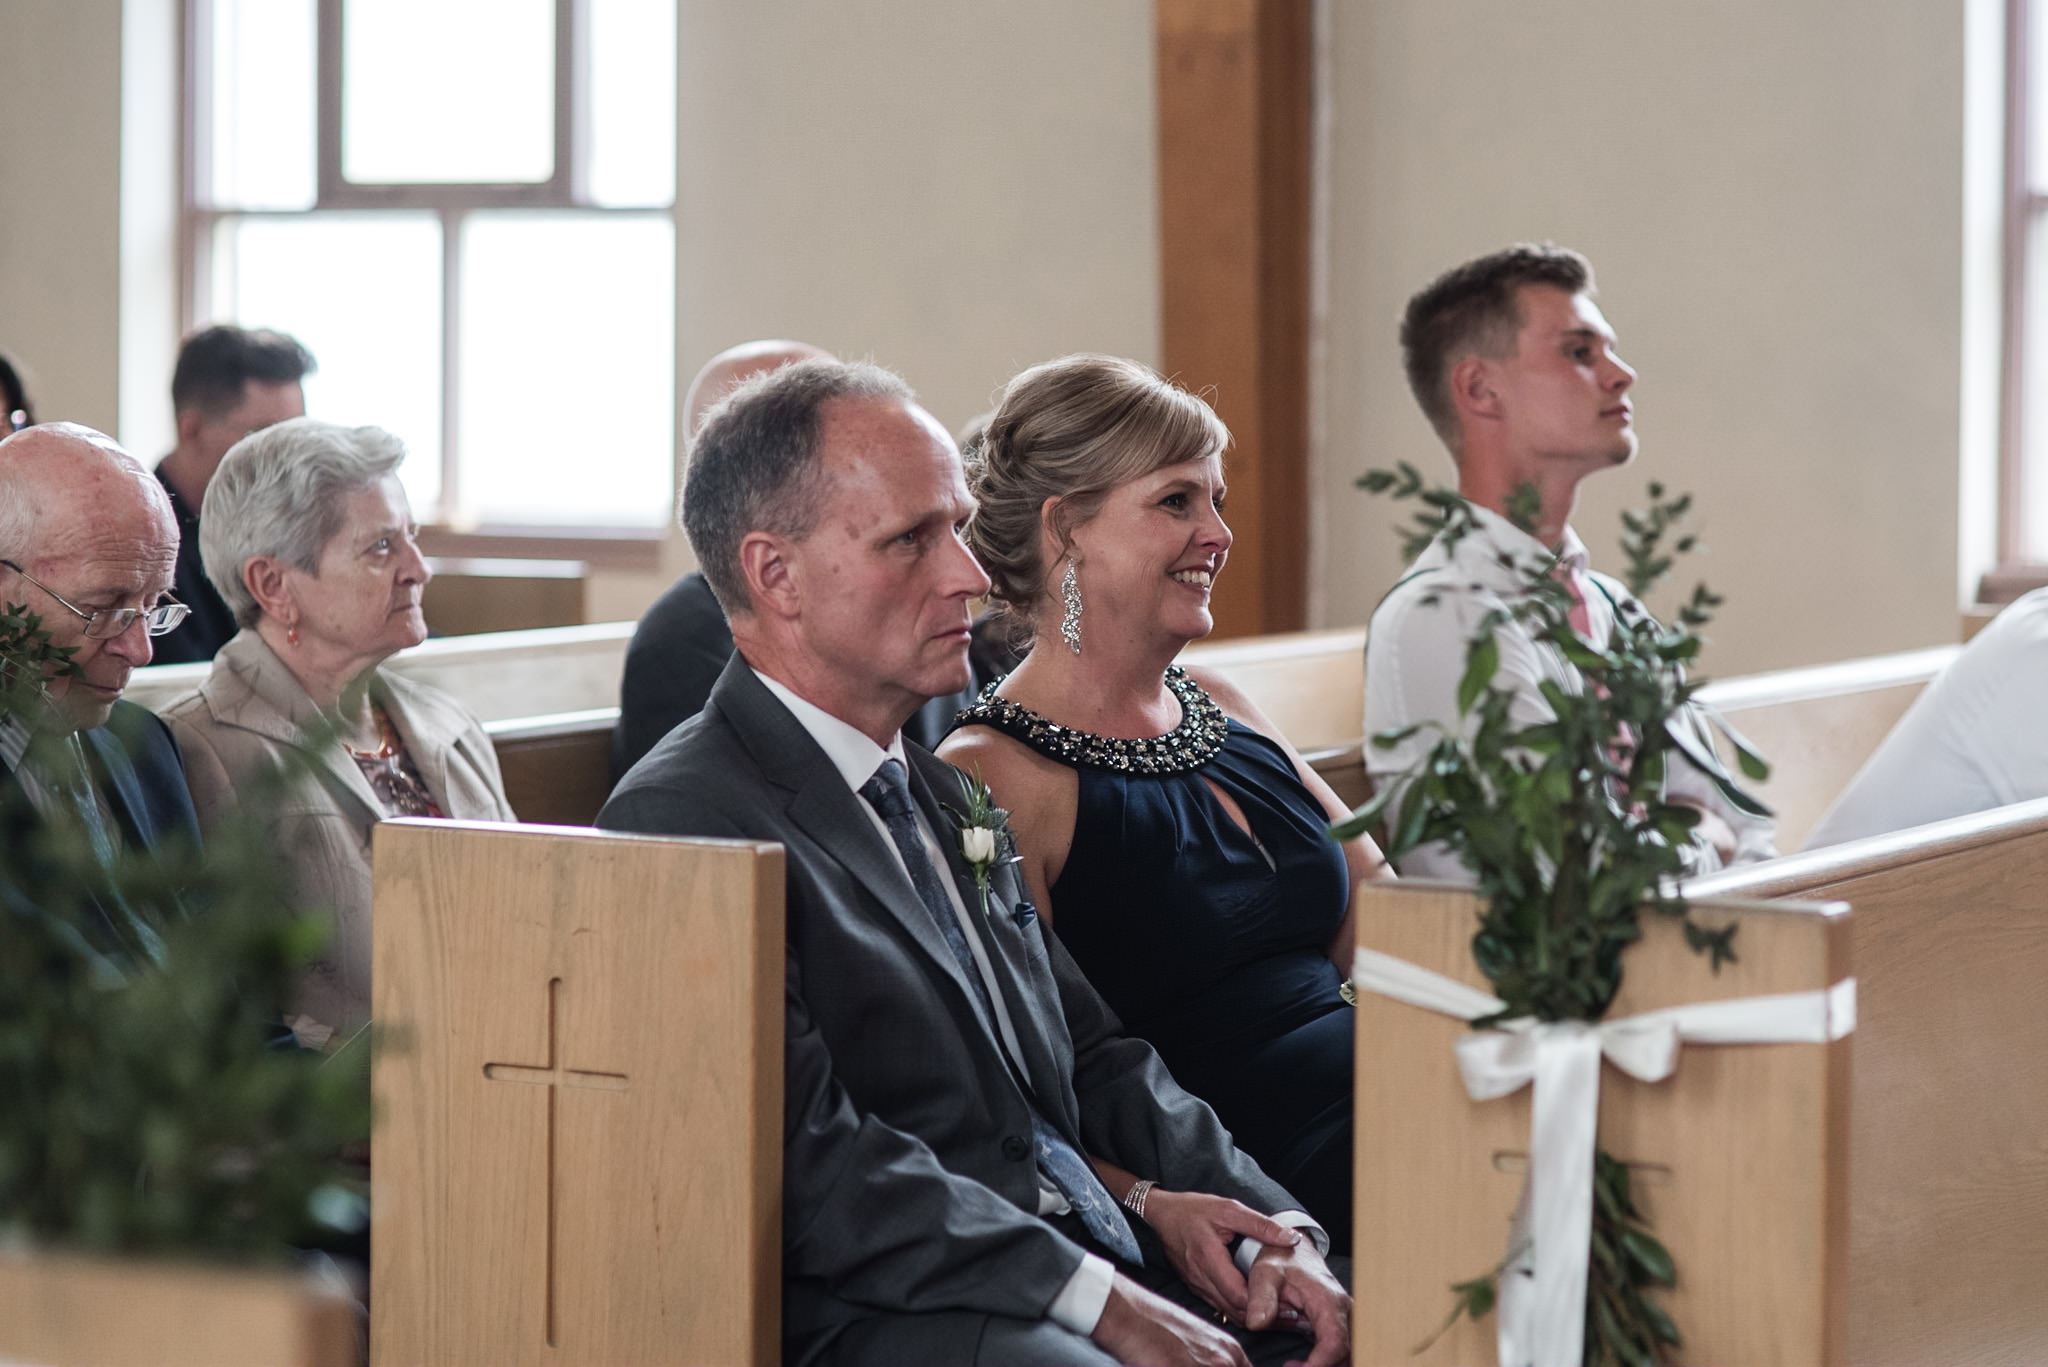 180-wedding-ceremony-candids-wooden-arch-in-church.jpg